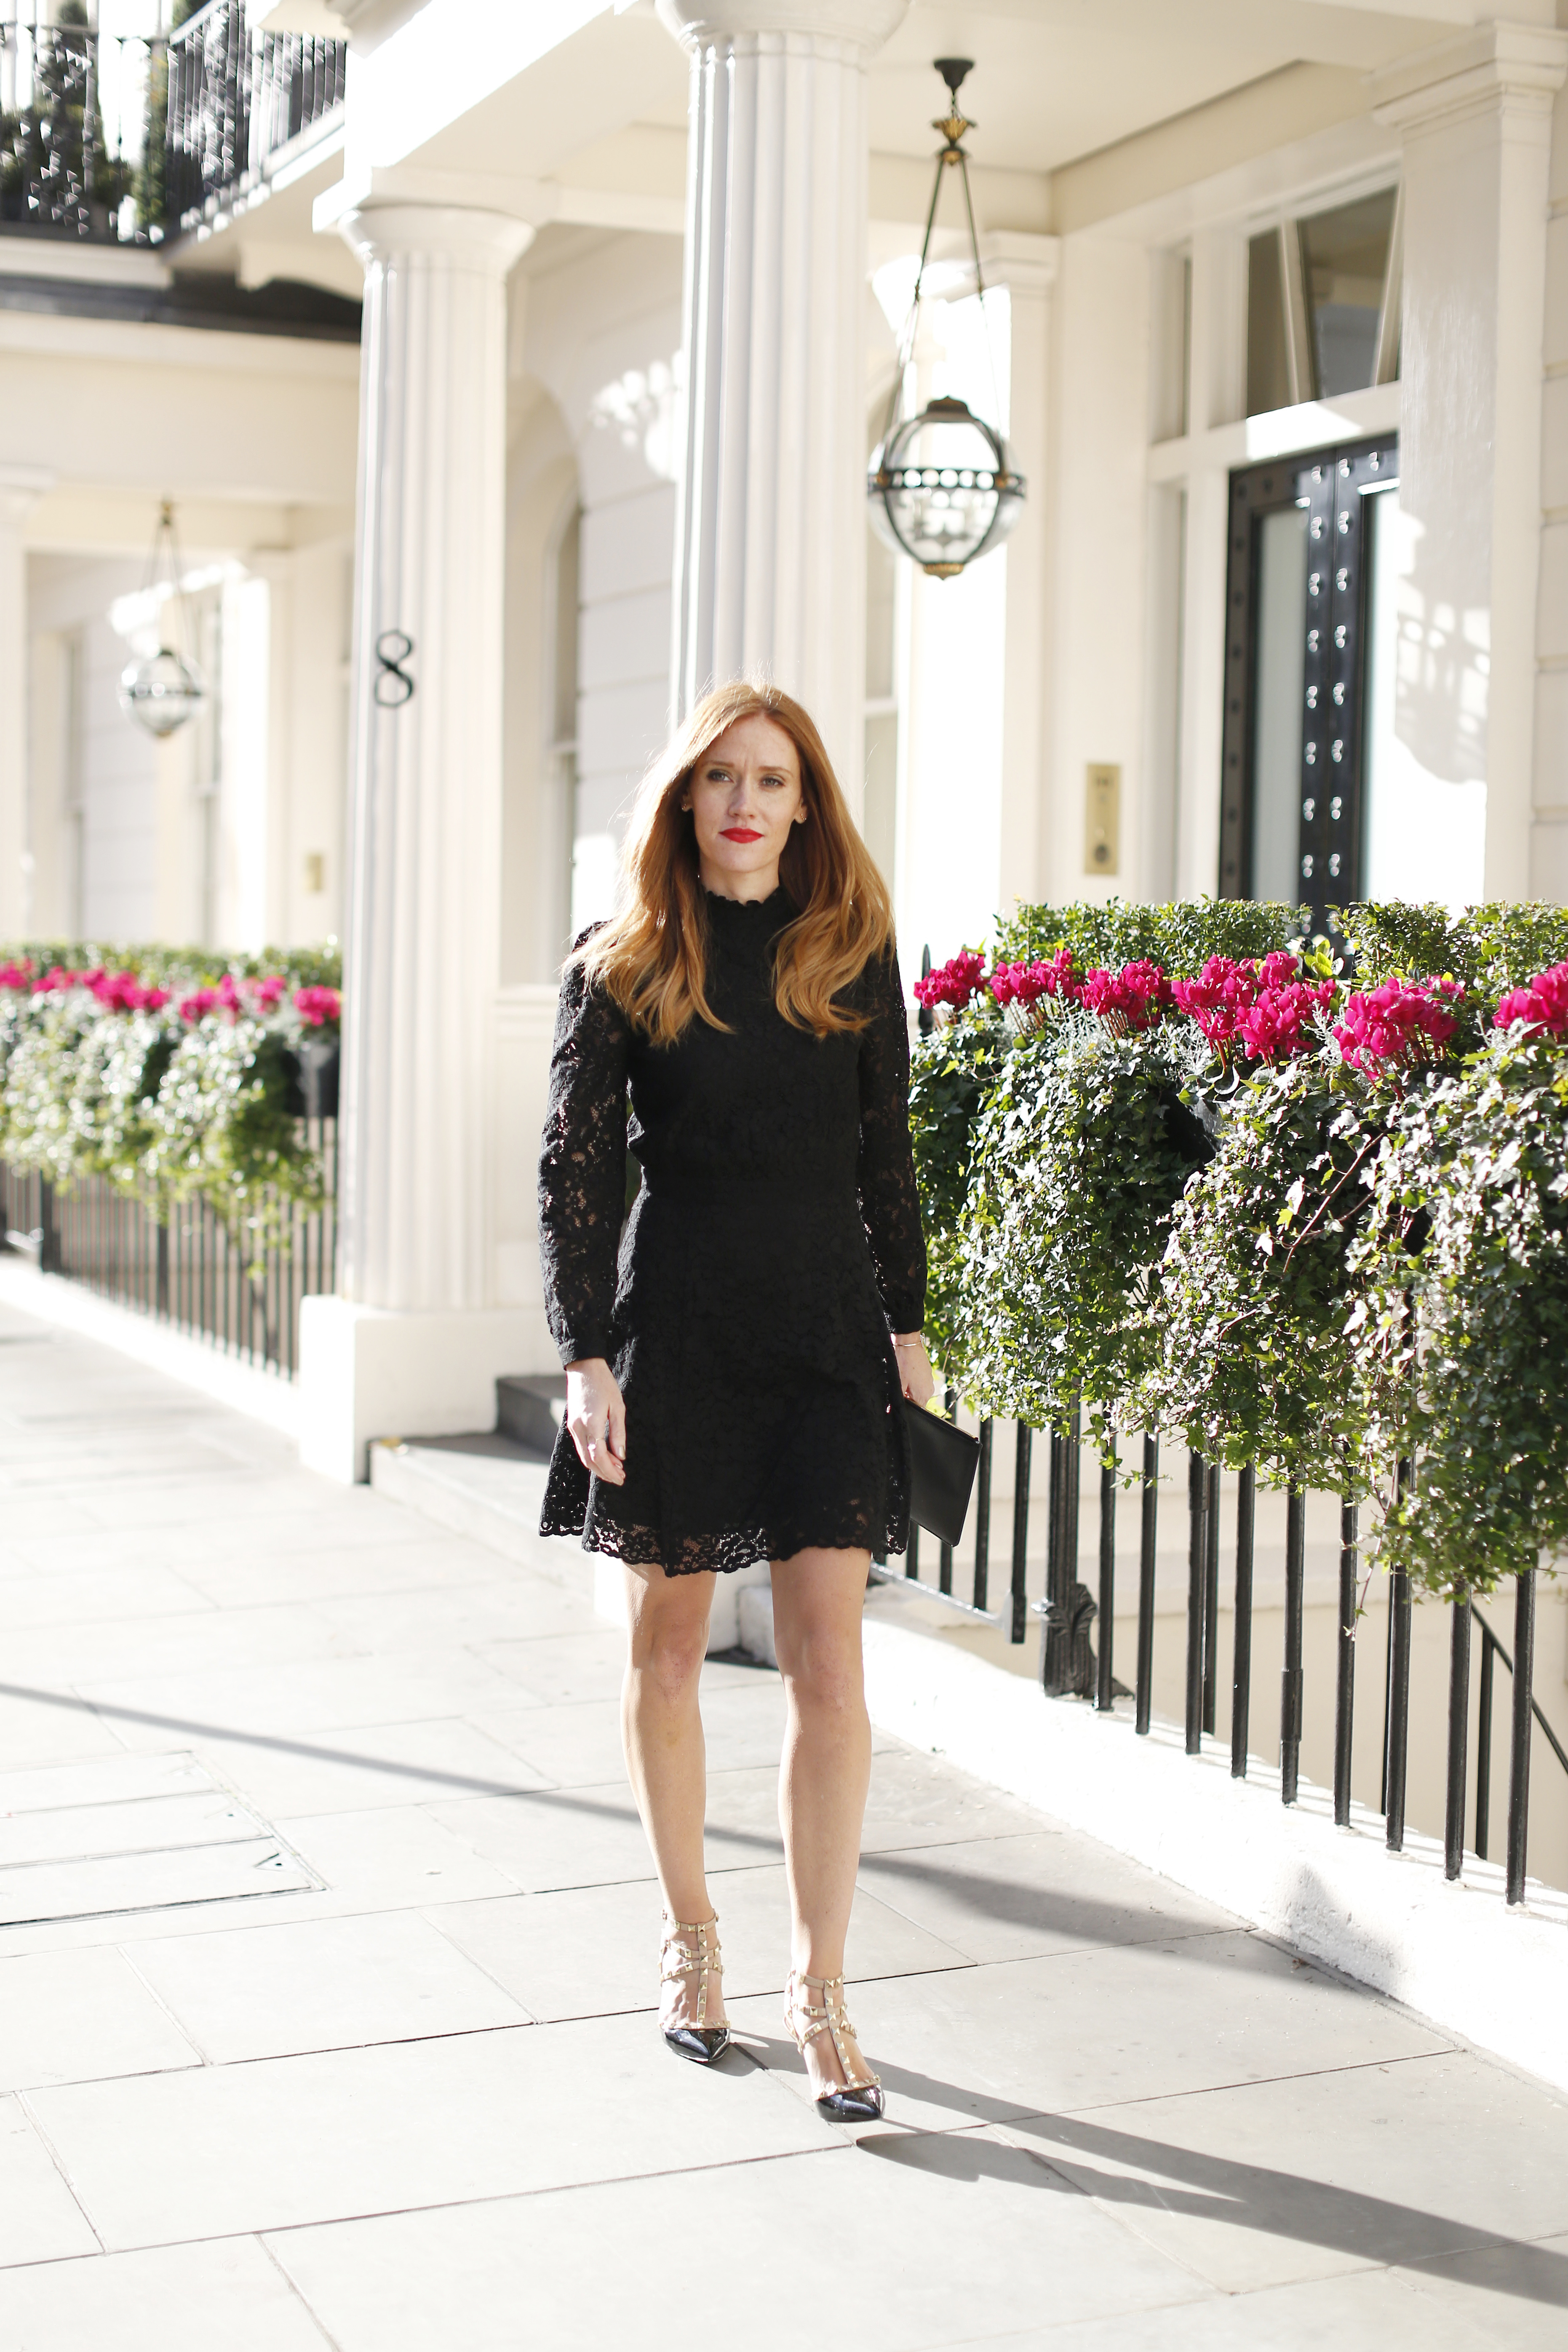 Indulging in Guilty Pleasures: Perfect Holiday Dress